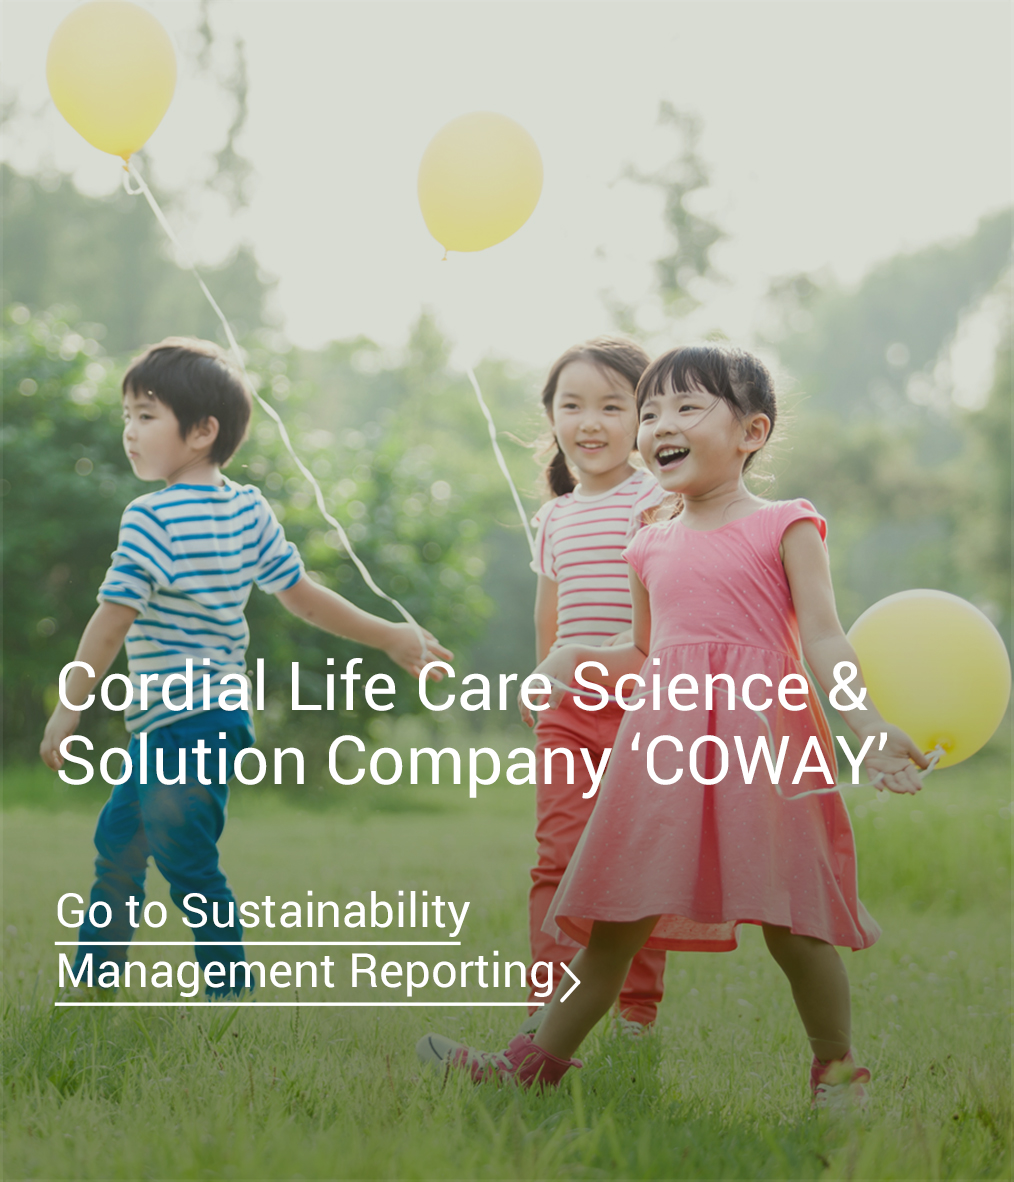 The Life Care Company 'COWAY'